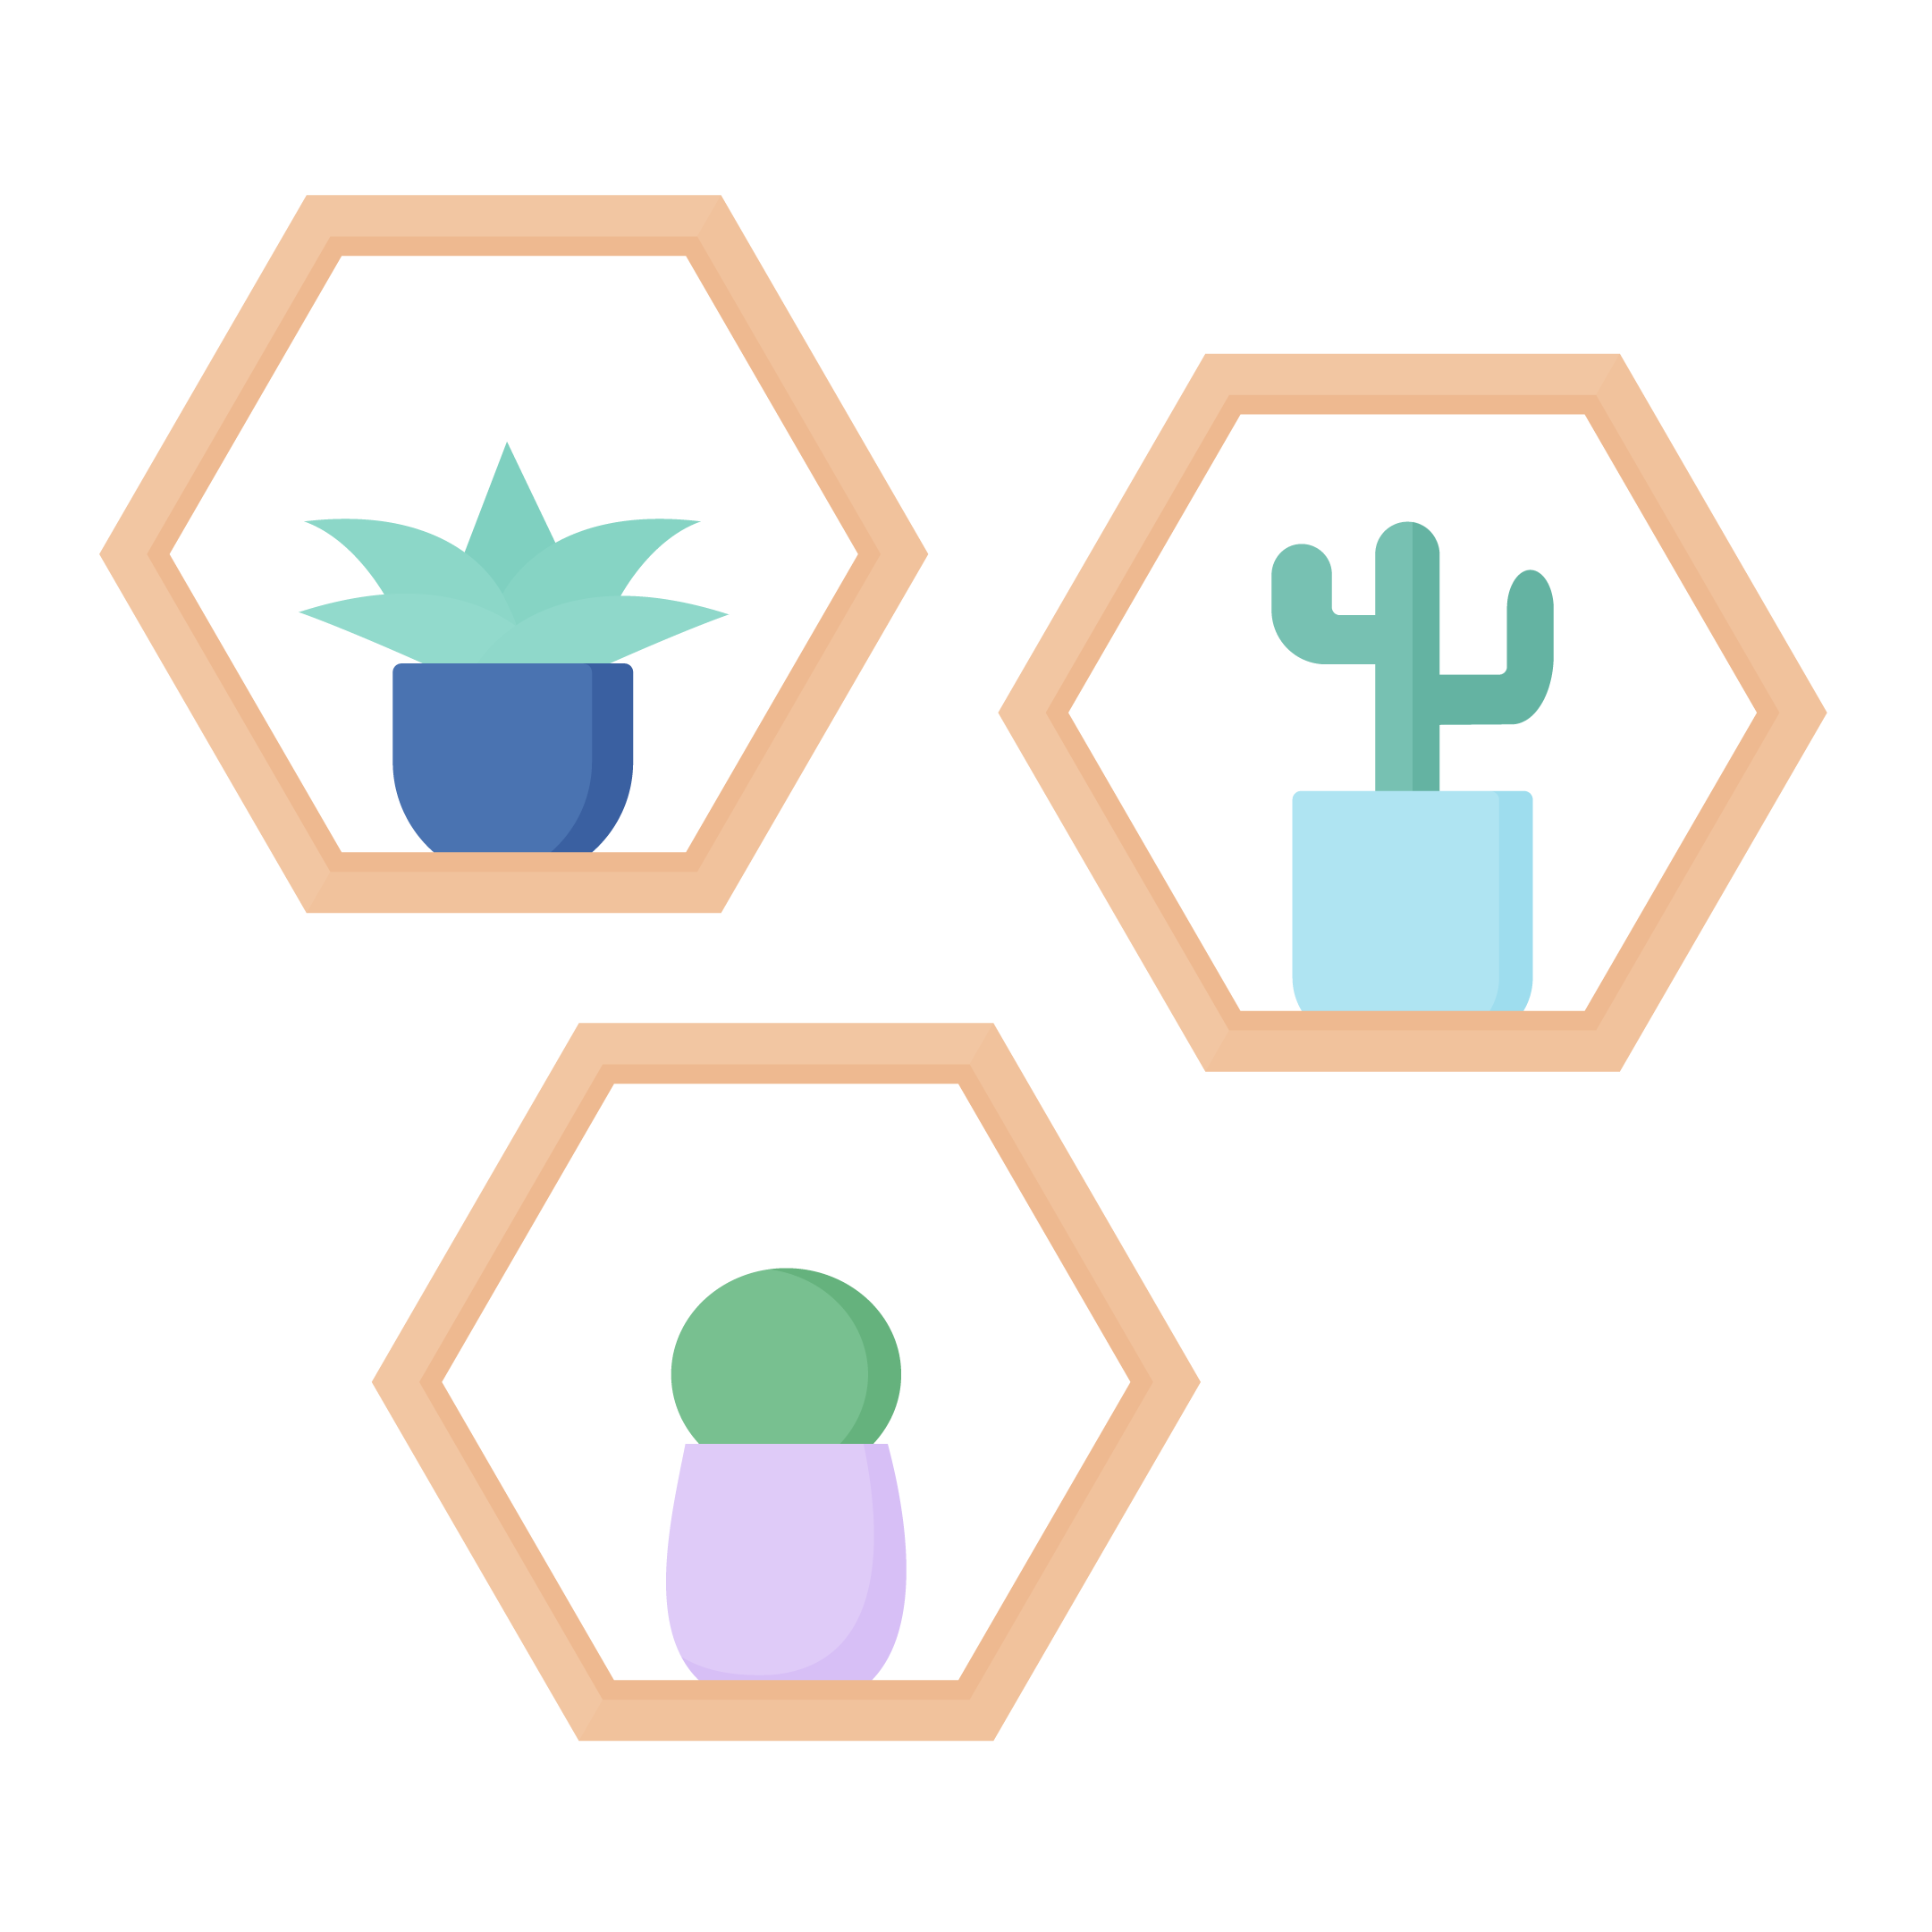 Vector illustration of three wooden hexagon shelves with cactus in flat design style